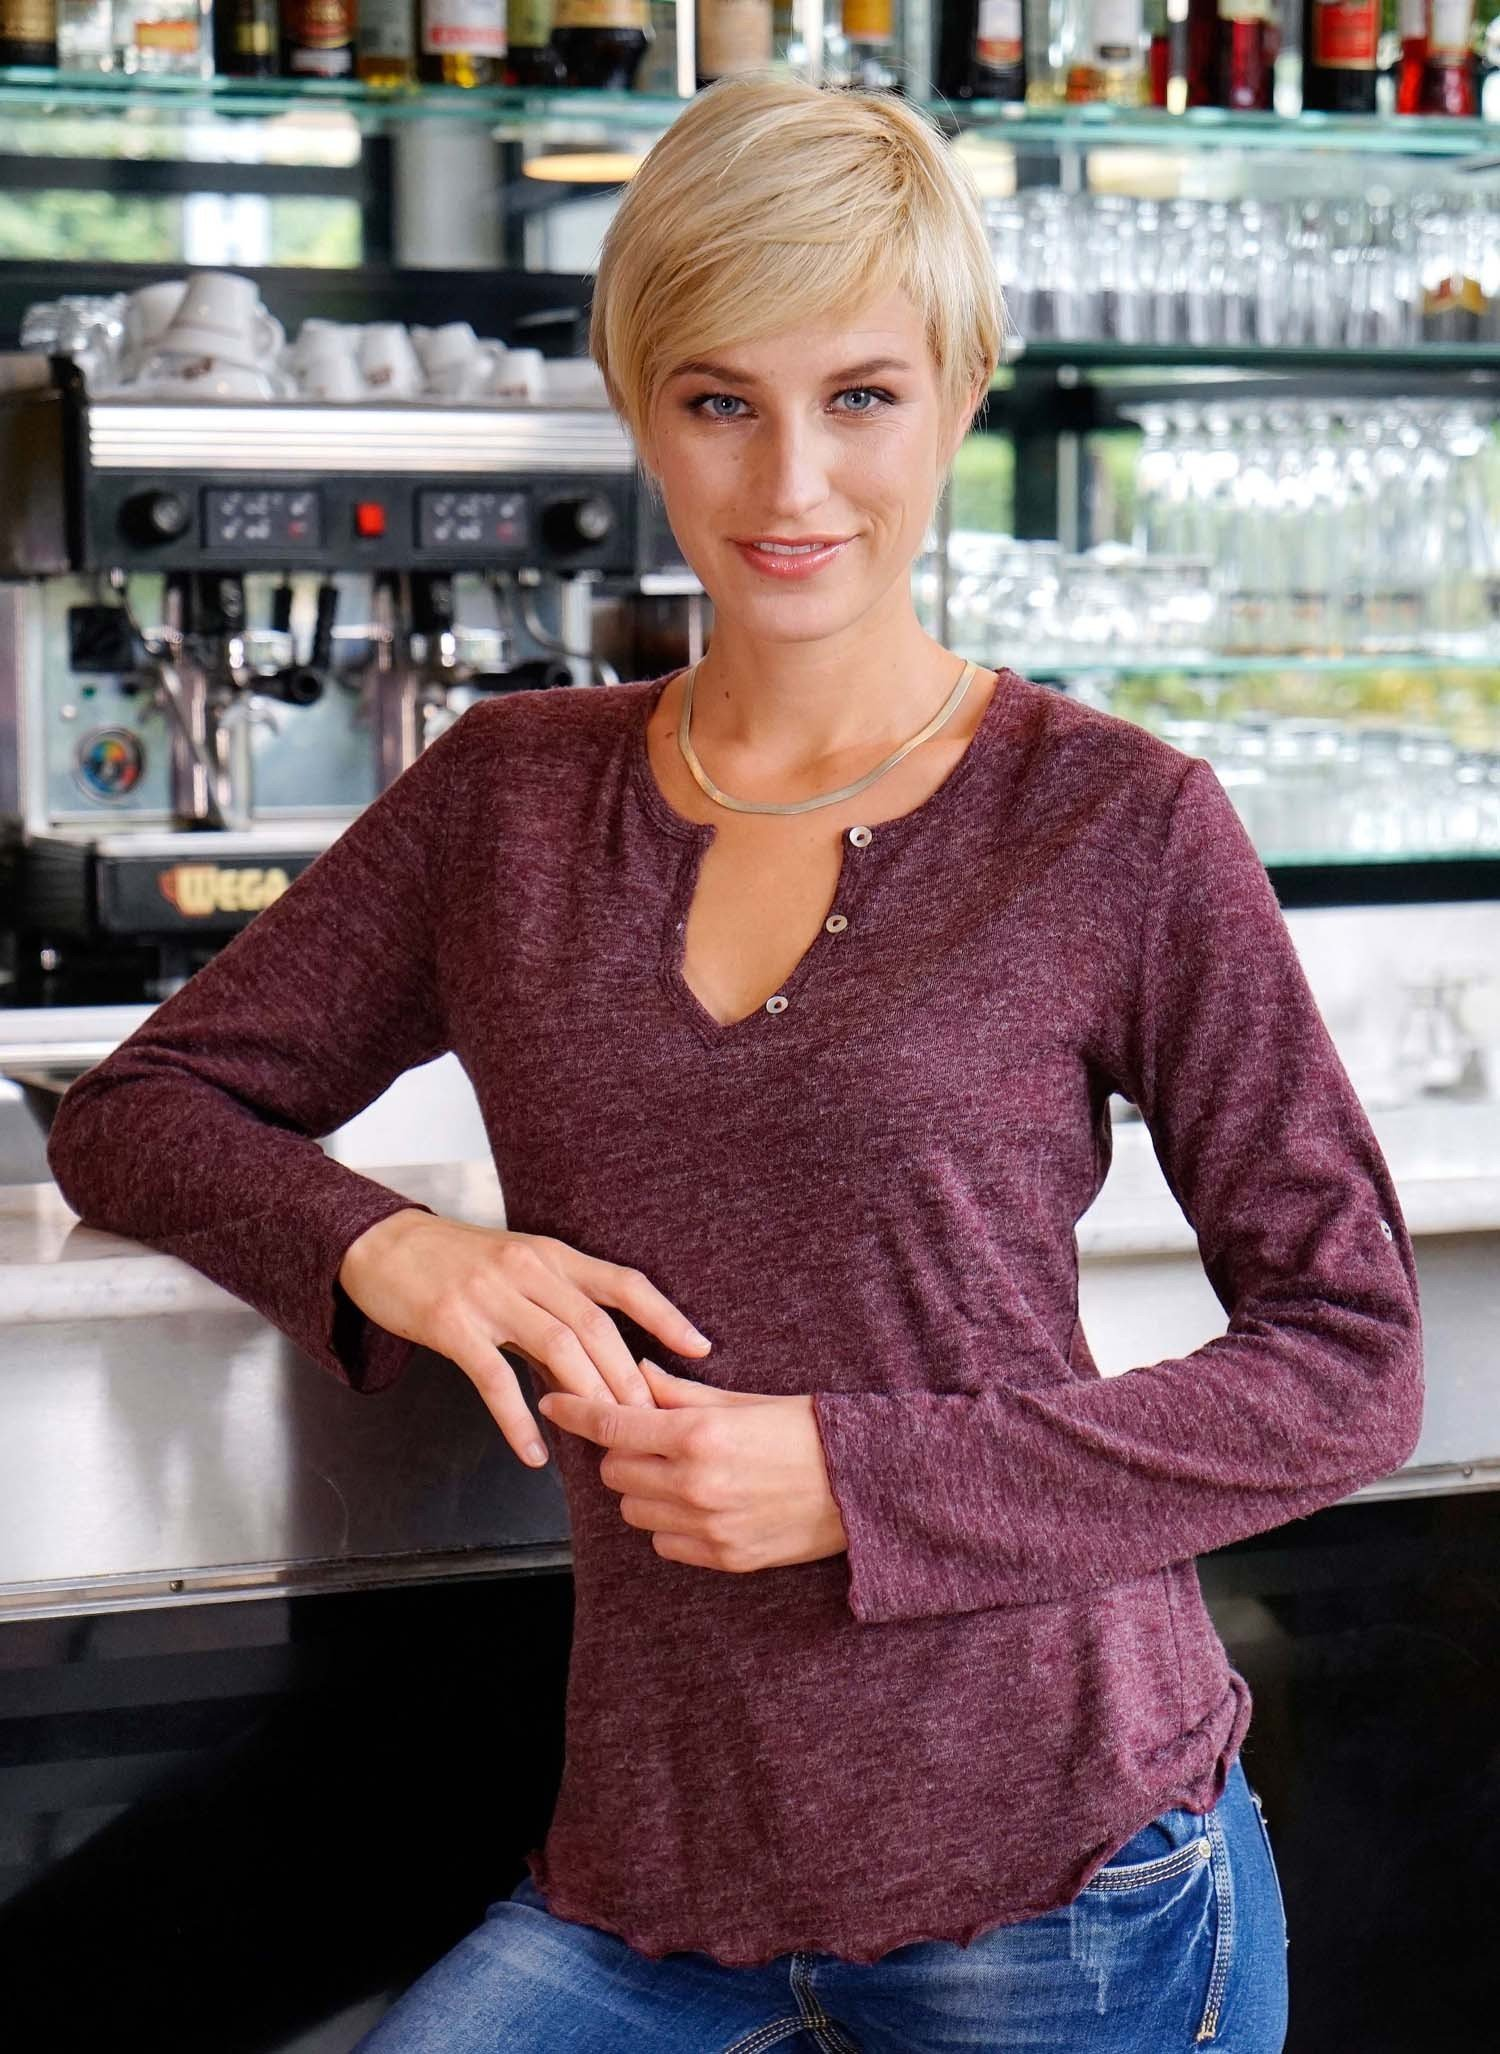 D-LA-Top,Melange-Opt.bordeaux L 032 - 1 - Ronja.ch